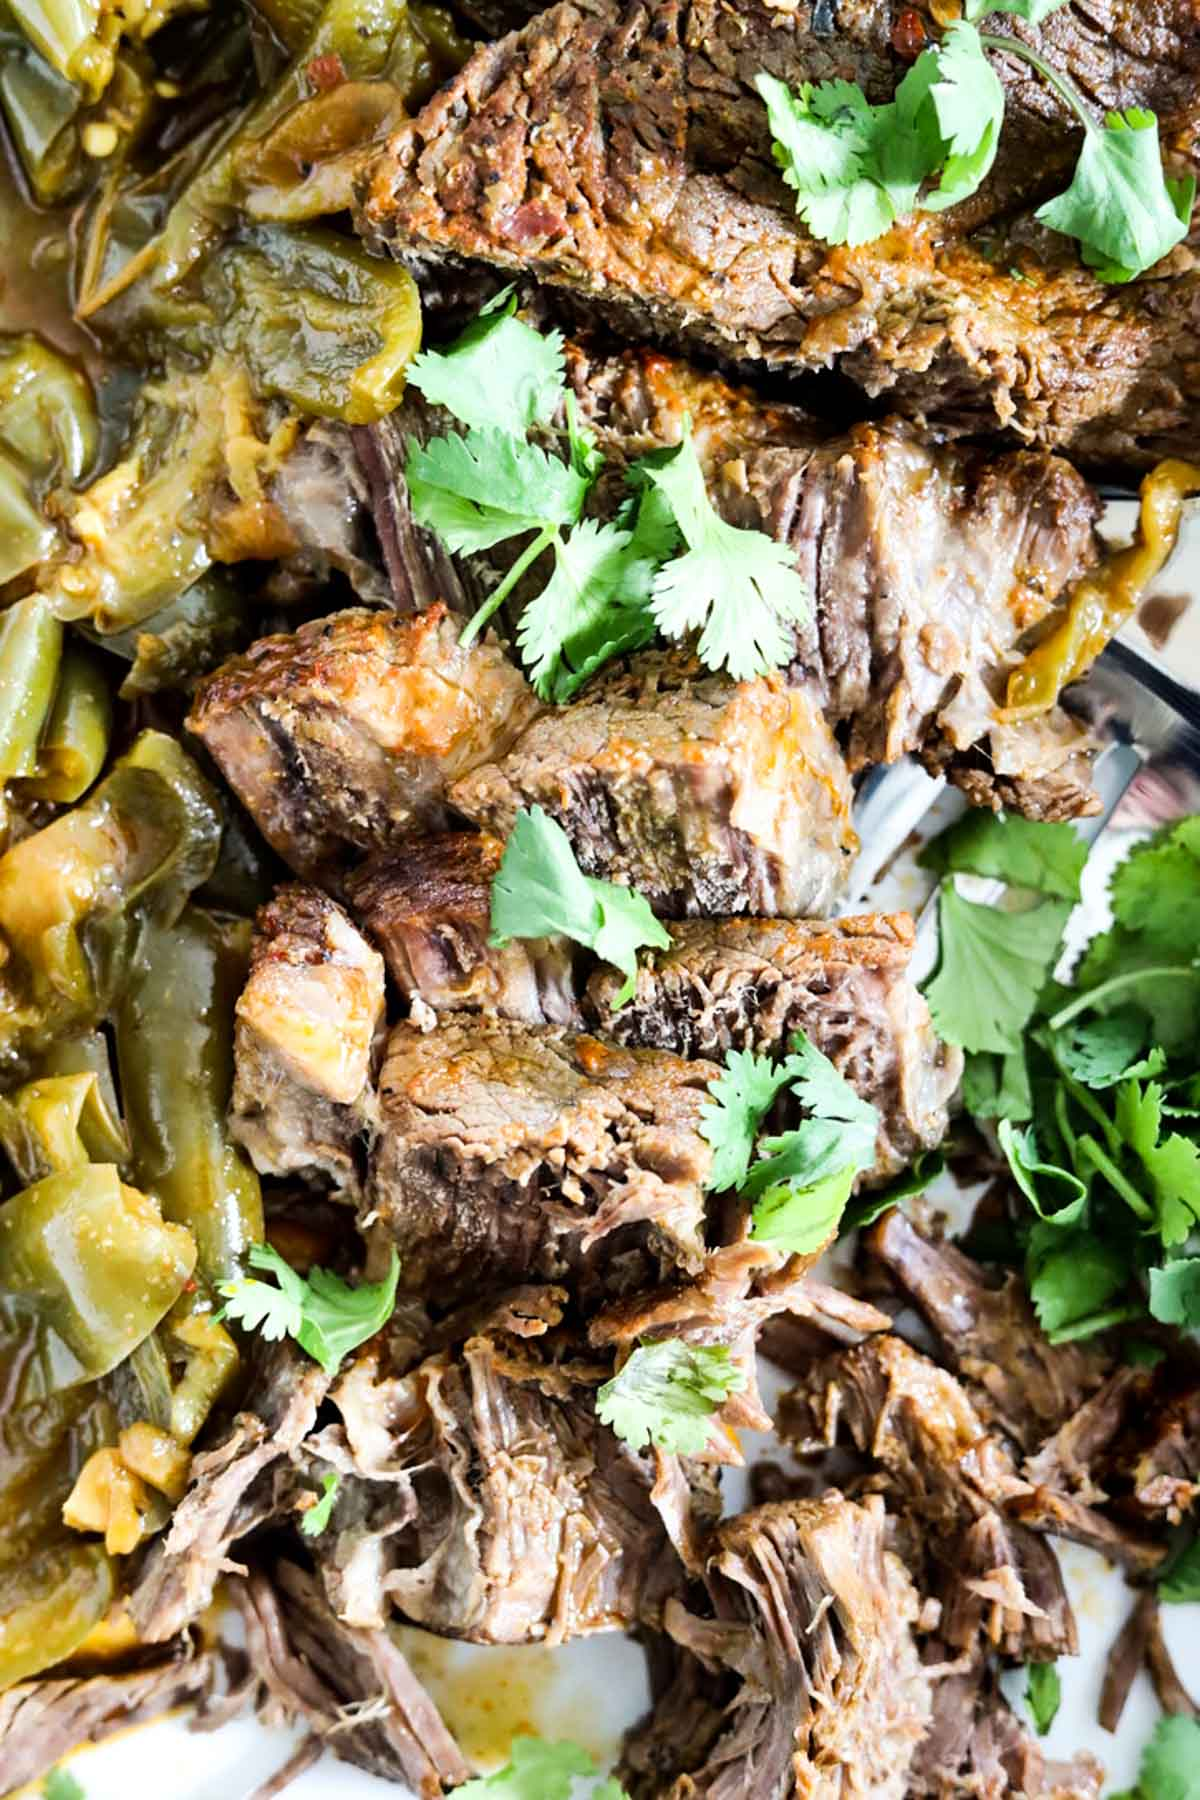 beef carne asada skirt steak with cilantro and jalapeno topping